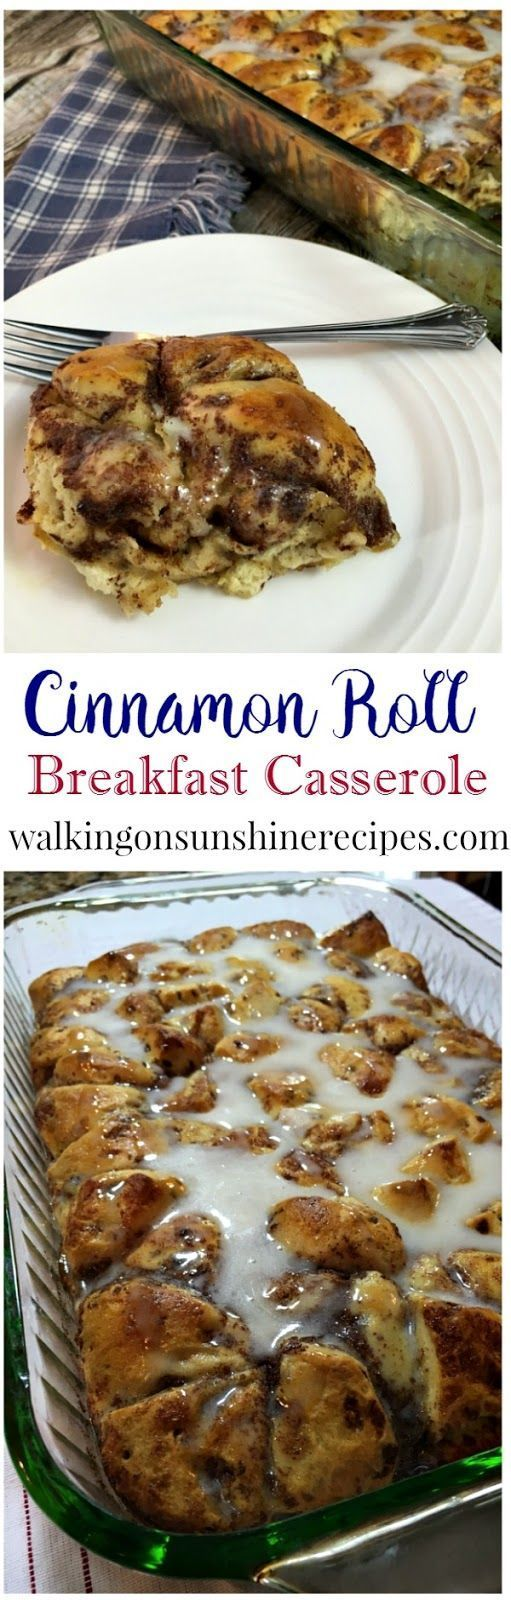 How to Make an Easy Cinnamon Roll Breakfast Casserole perfect for the weekend or even Christmas morning from Walking on Sunshine Recipes